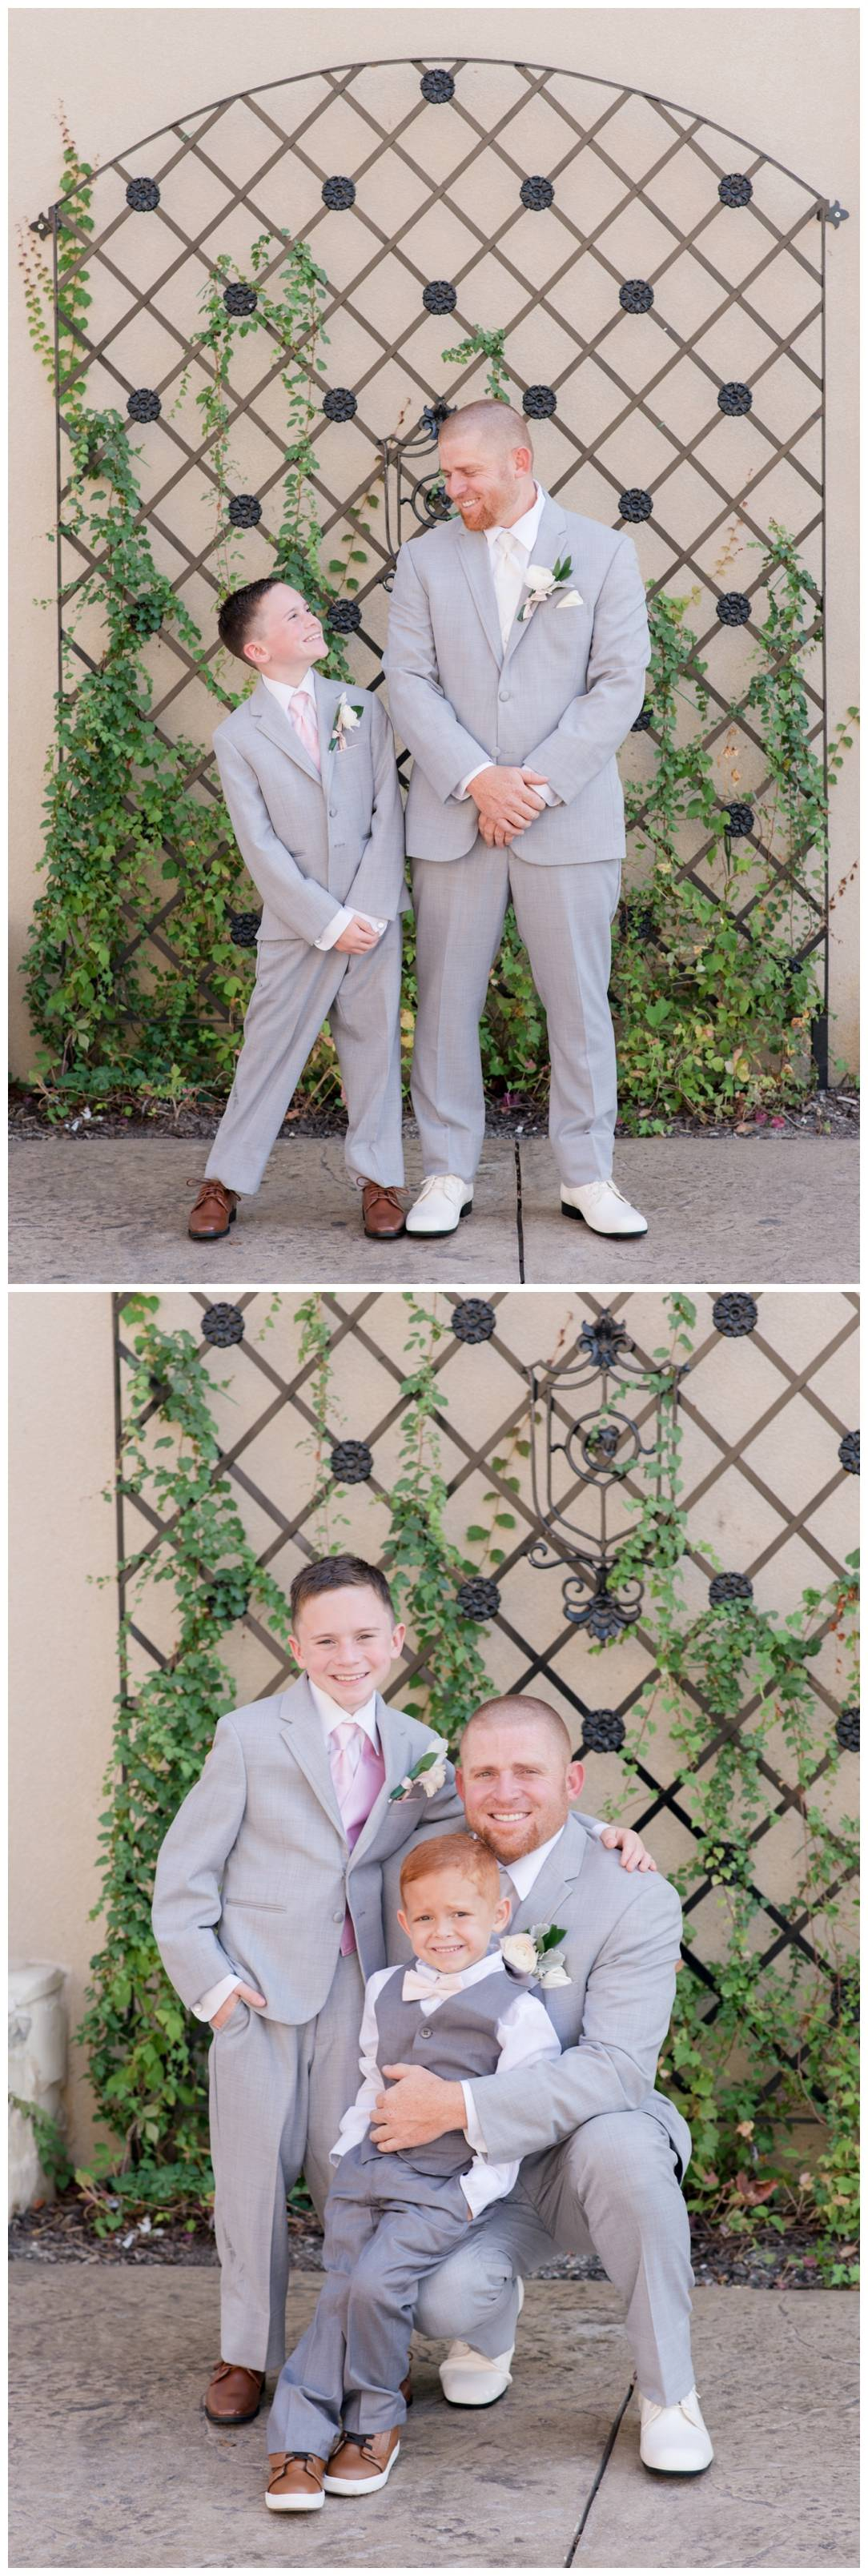 Ring Bearer Poses with Groom at The Knotting Hill Place.jpg